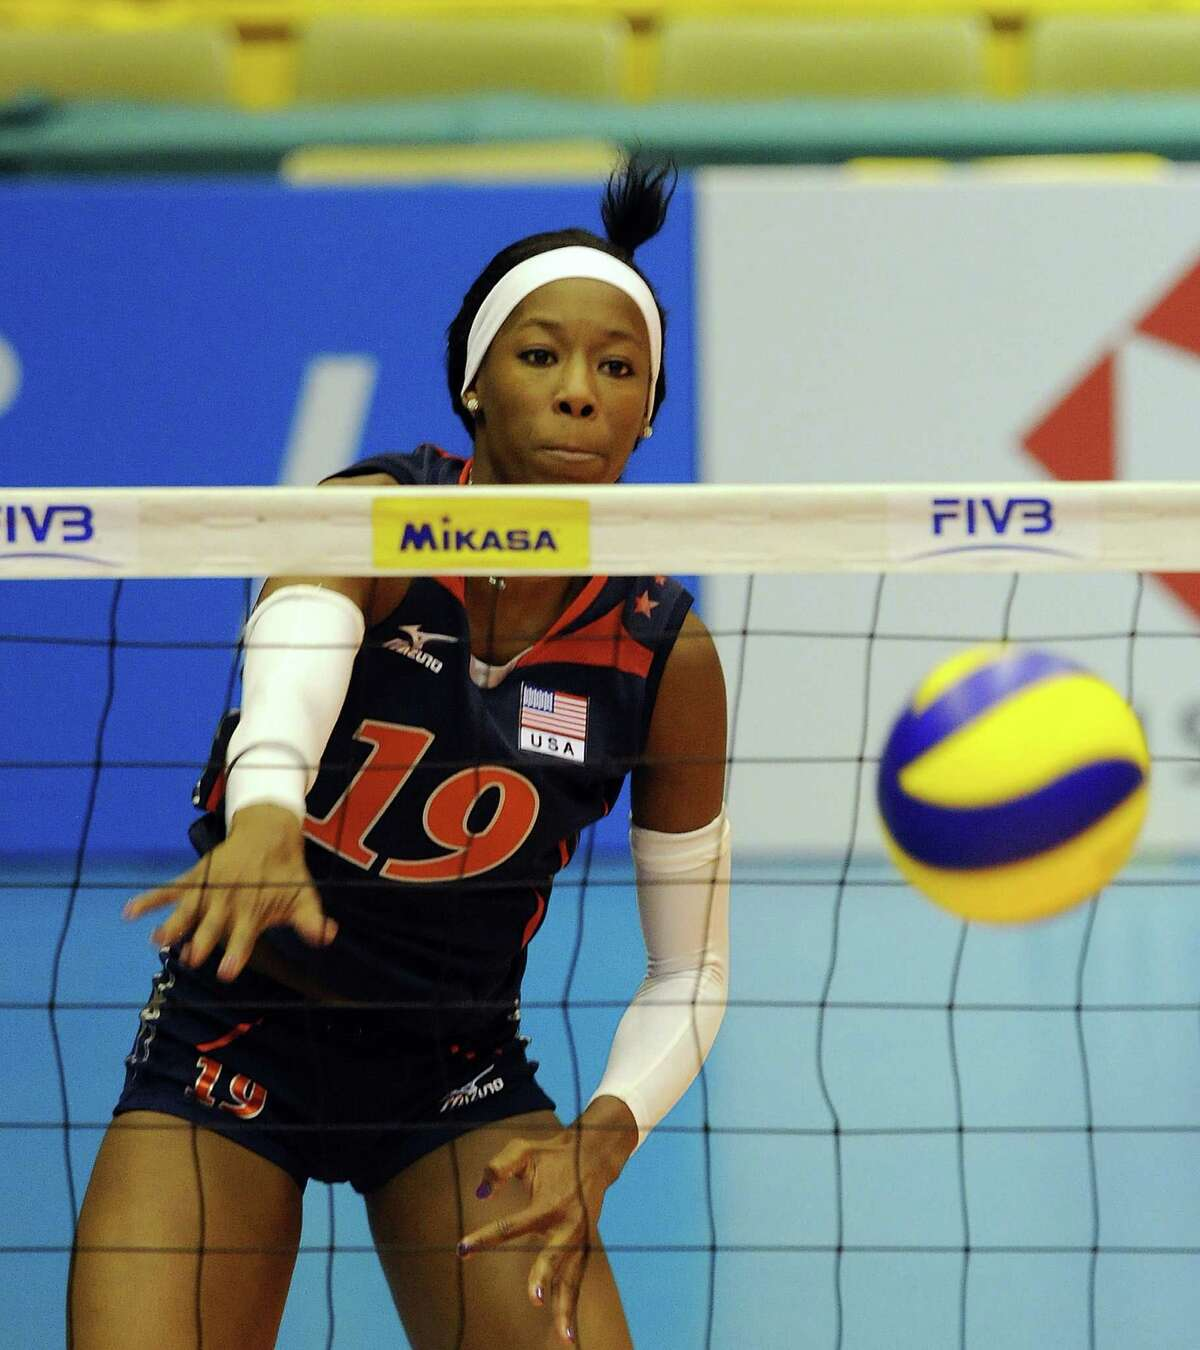 Former Southwest and UT standout Destinee Hooker is one of the top players for Team USA, which is ranked No. 1 in the world and the favorite to claim the gold medal in London.